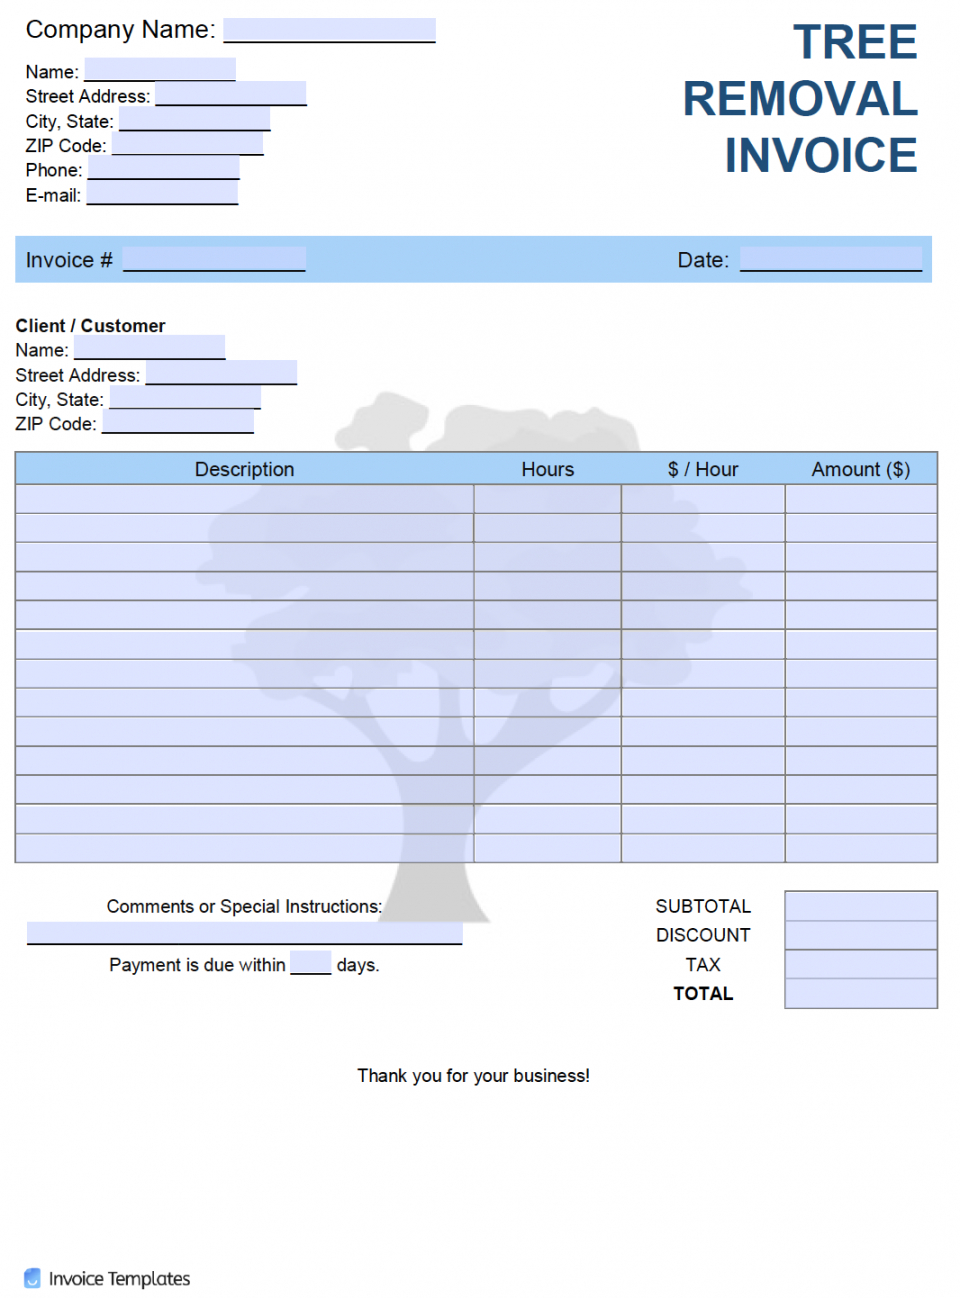 editable free tree removal service invoice template  pdf  word  excel tree trimming estimate template